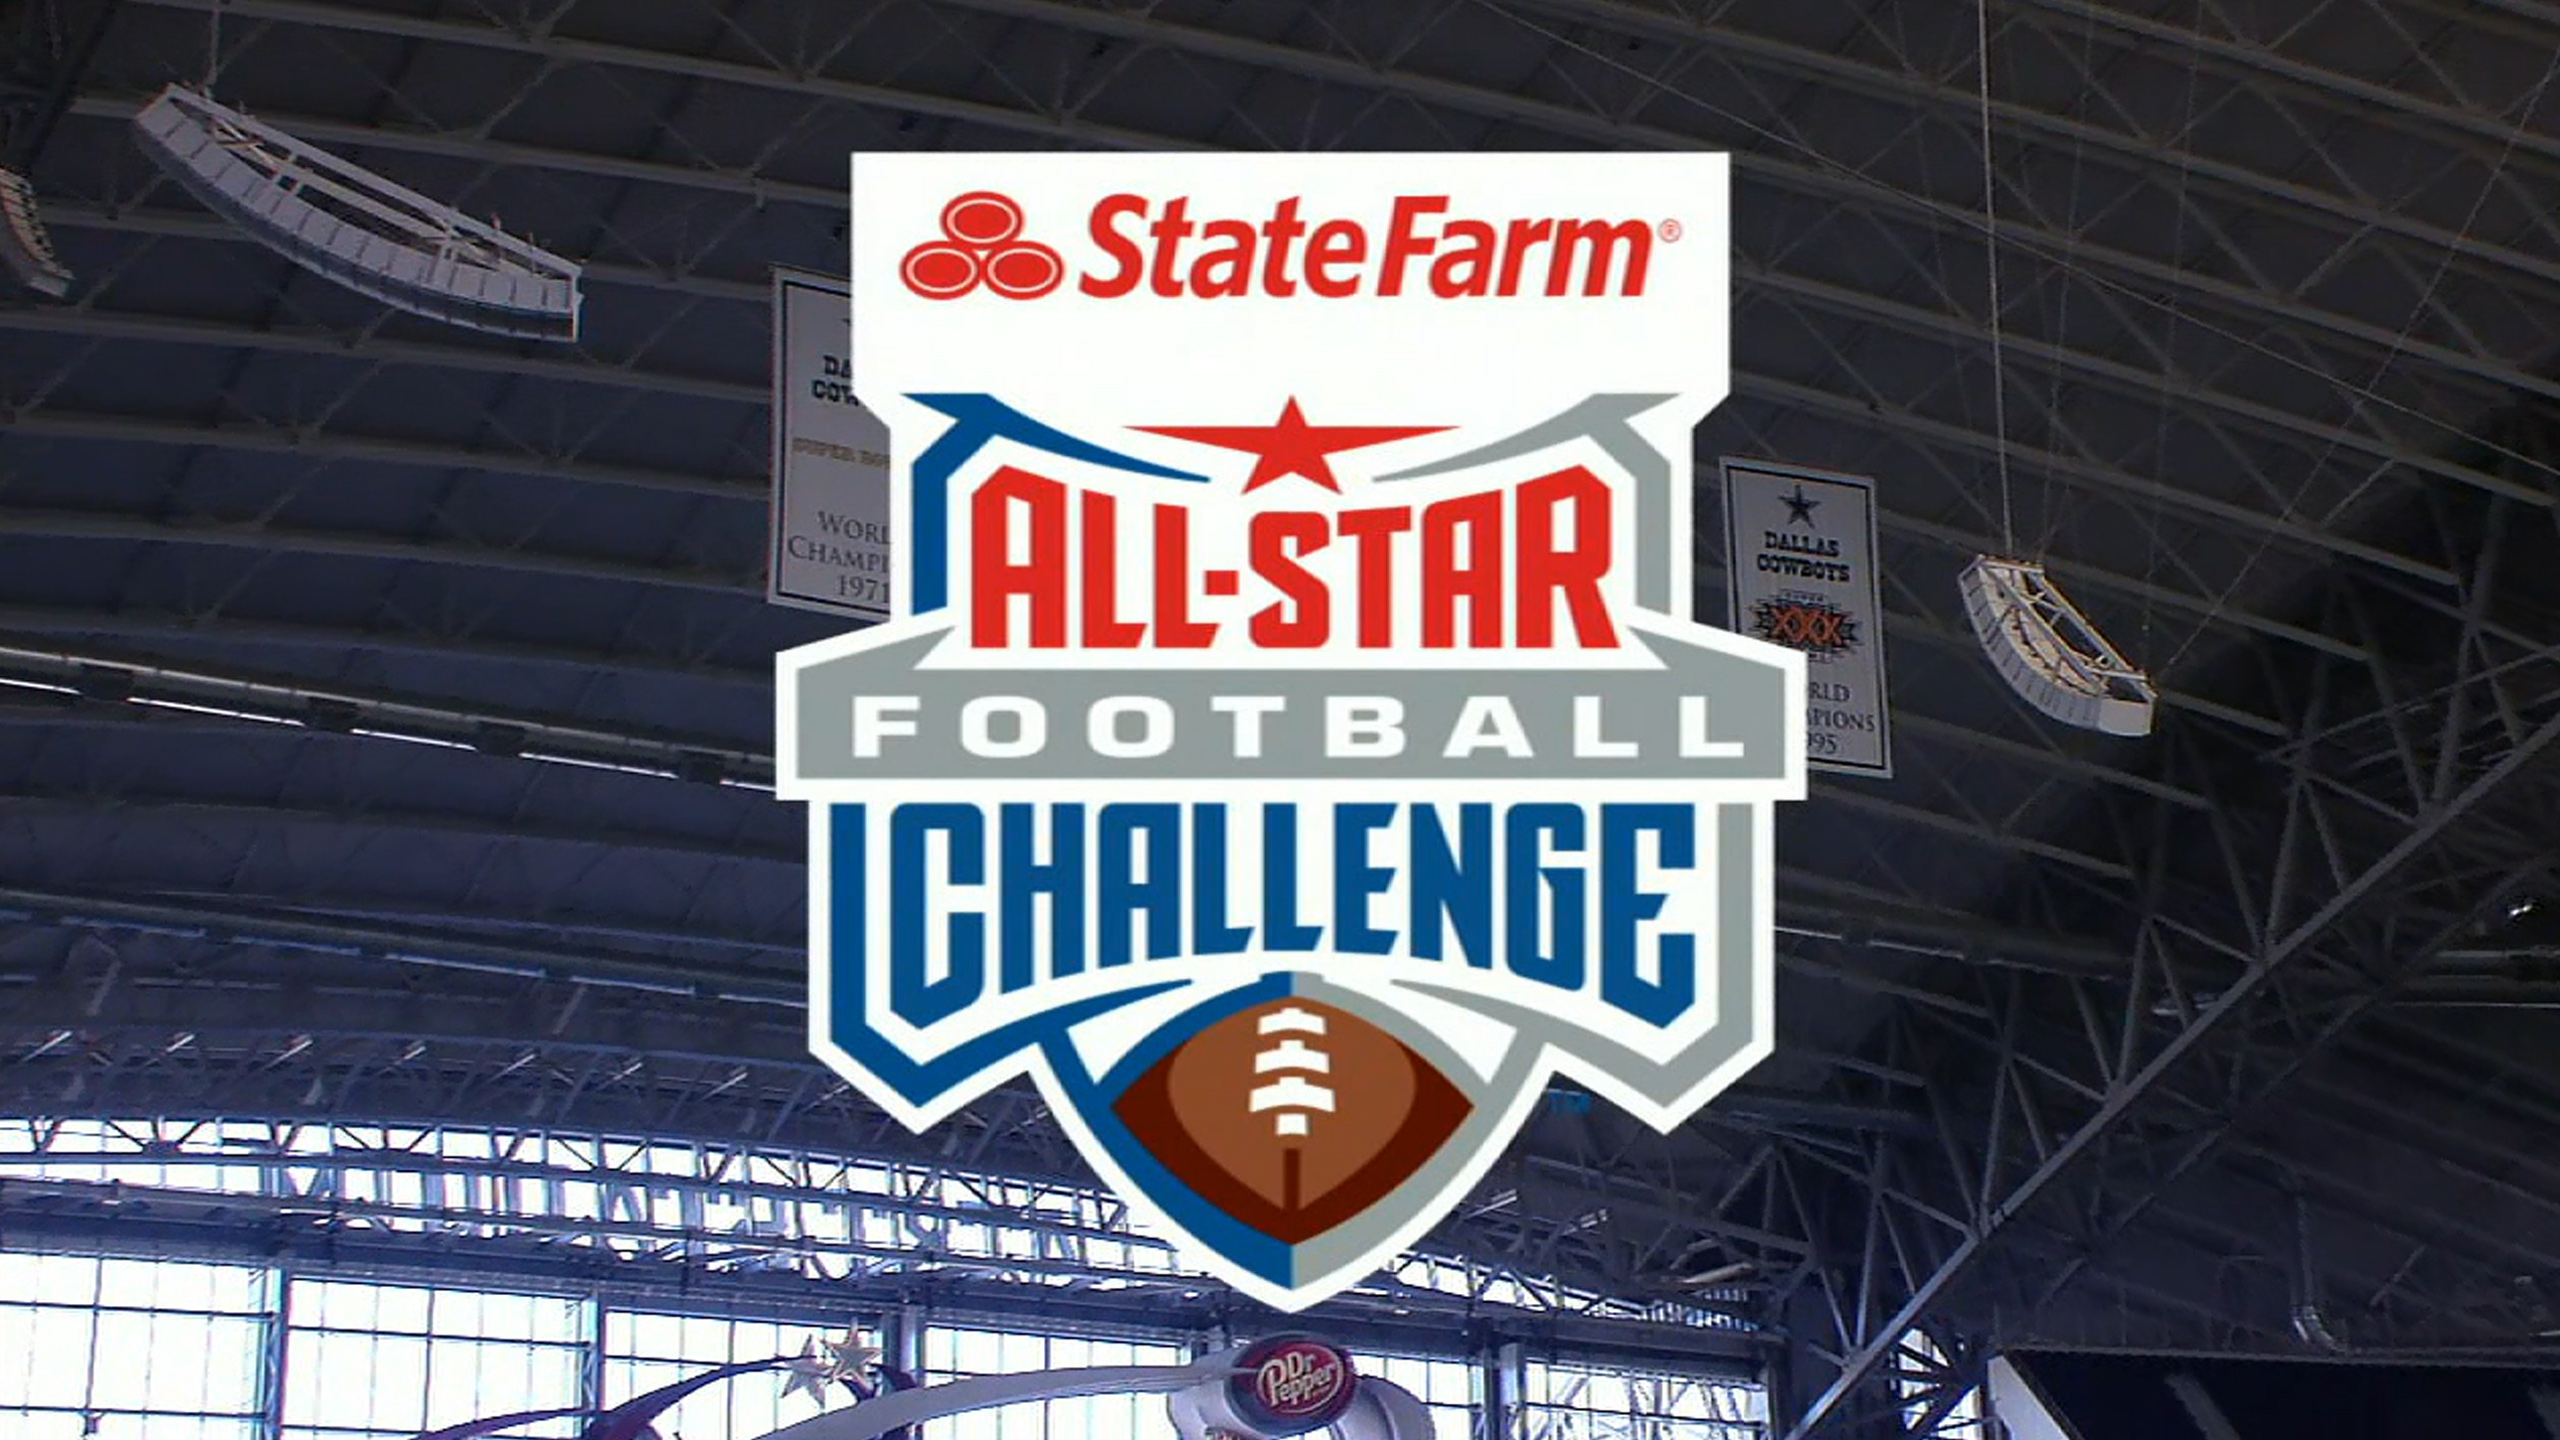 State Farm All-Star Football Challenge